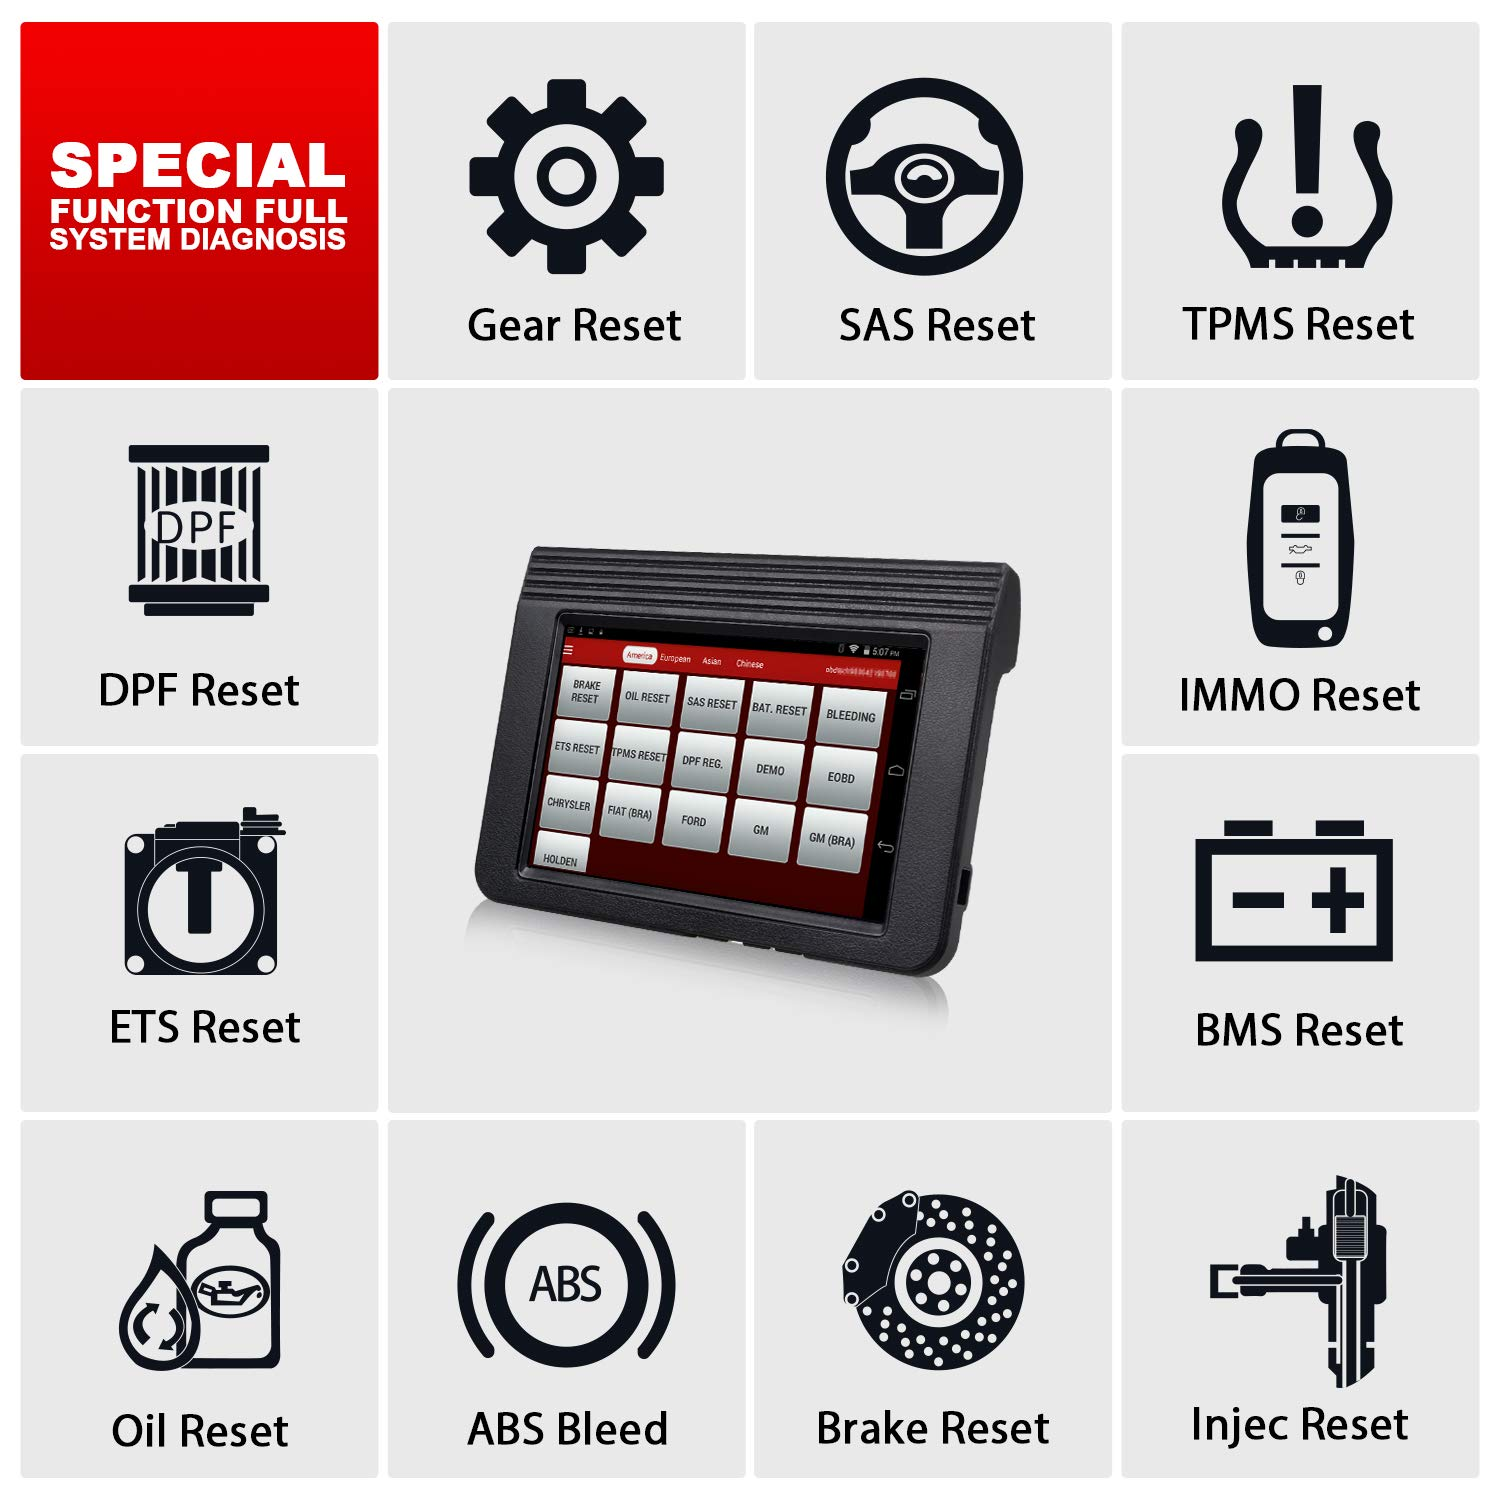 LAUNCH X431 V (X431 Pro) Bi-Directional OBD2 Diagnostic Scanner,ECU Coding Key Fob Programming, ABS Bleeding Brake, Reset Functions Oil Reset, TPMS,EPB, SAS, DPF, BMS, SRS - 2 Years Free Update & Case by LAUNCH (Image #7)